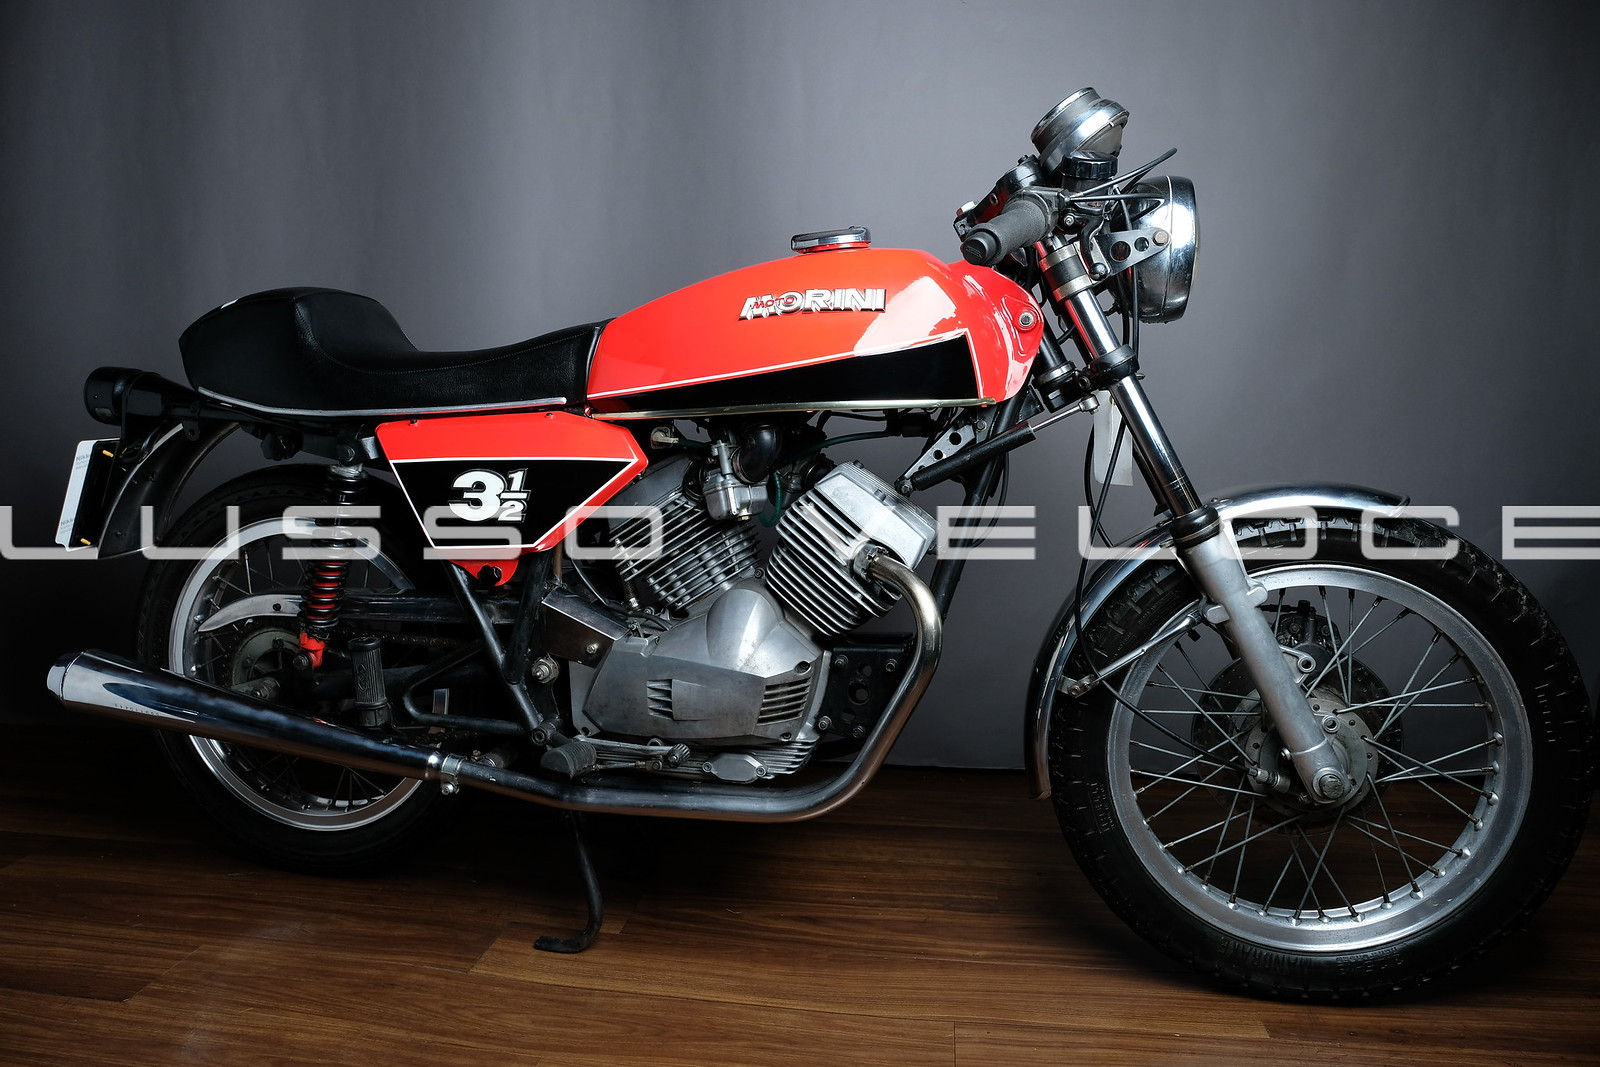 Morini 350 Wires and Disc